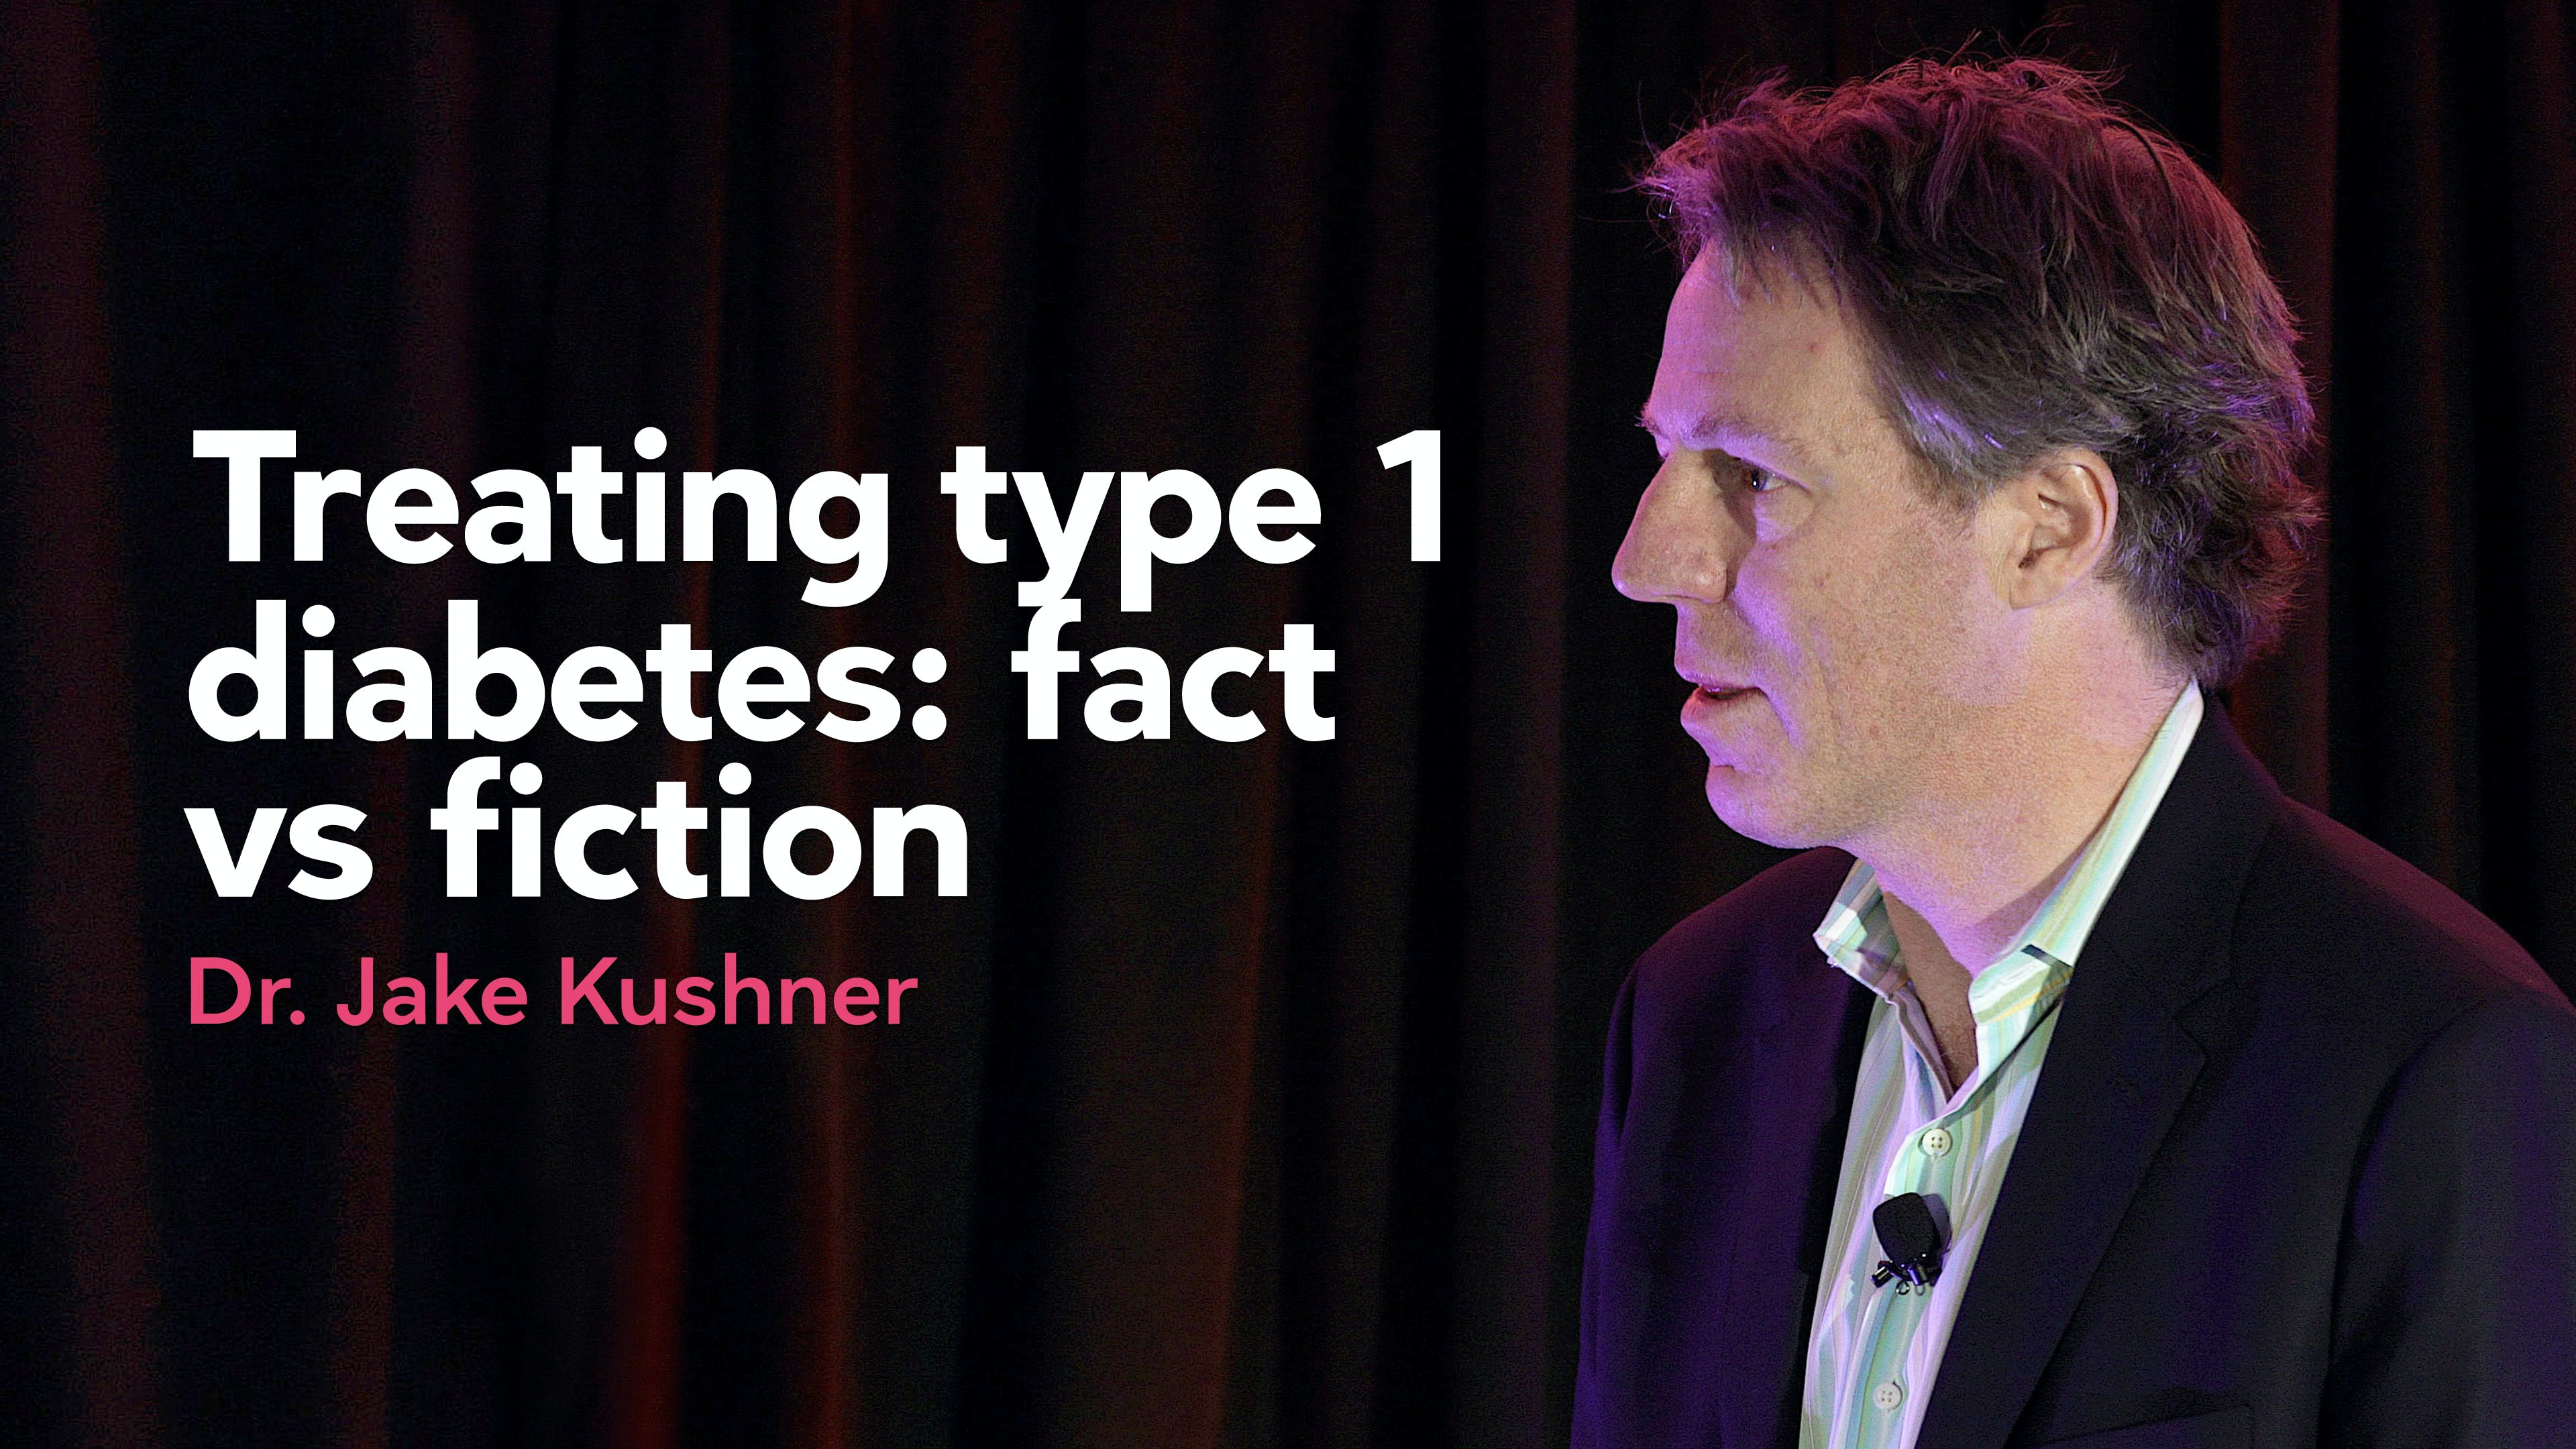 Treating type 1 diabetes: fact vs fiction